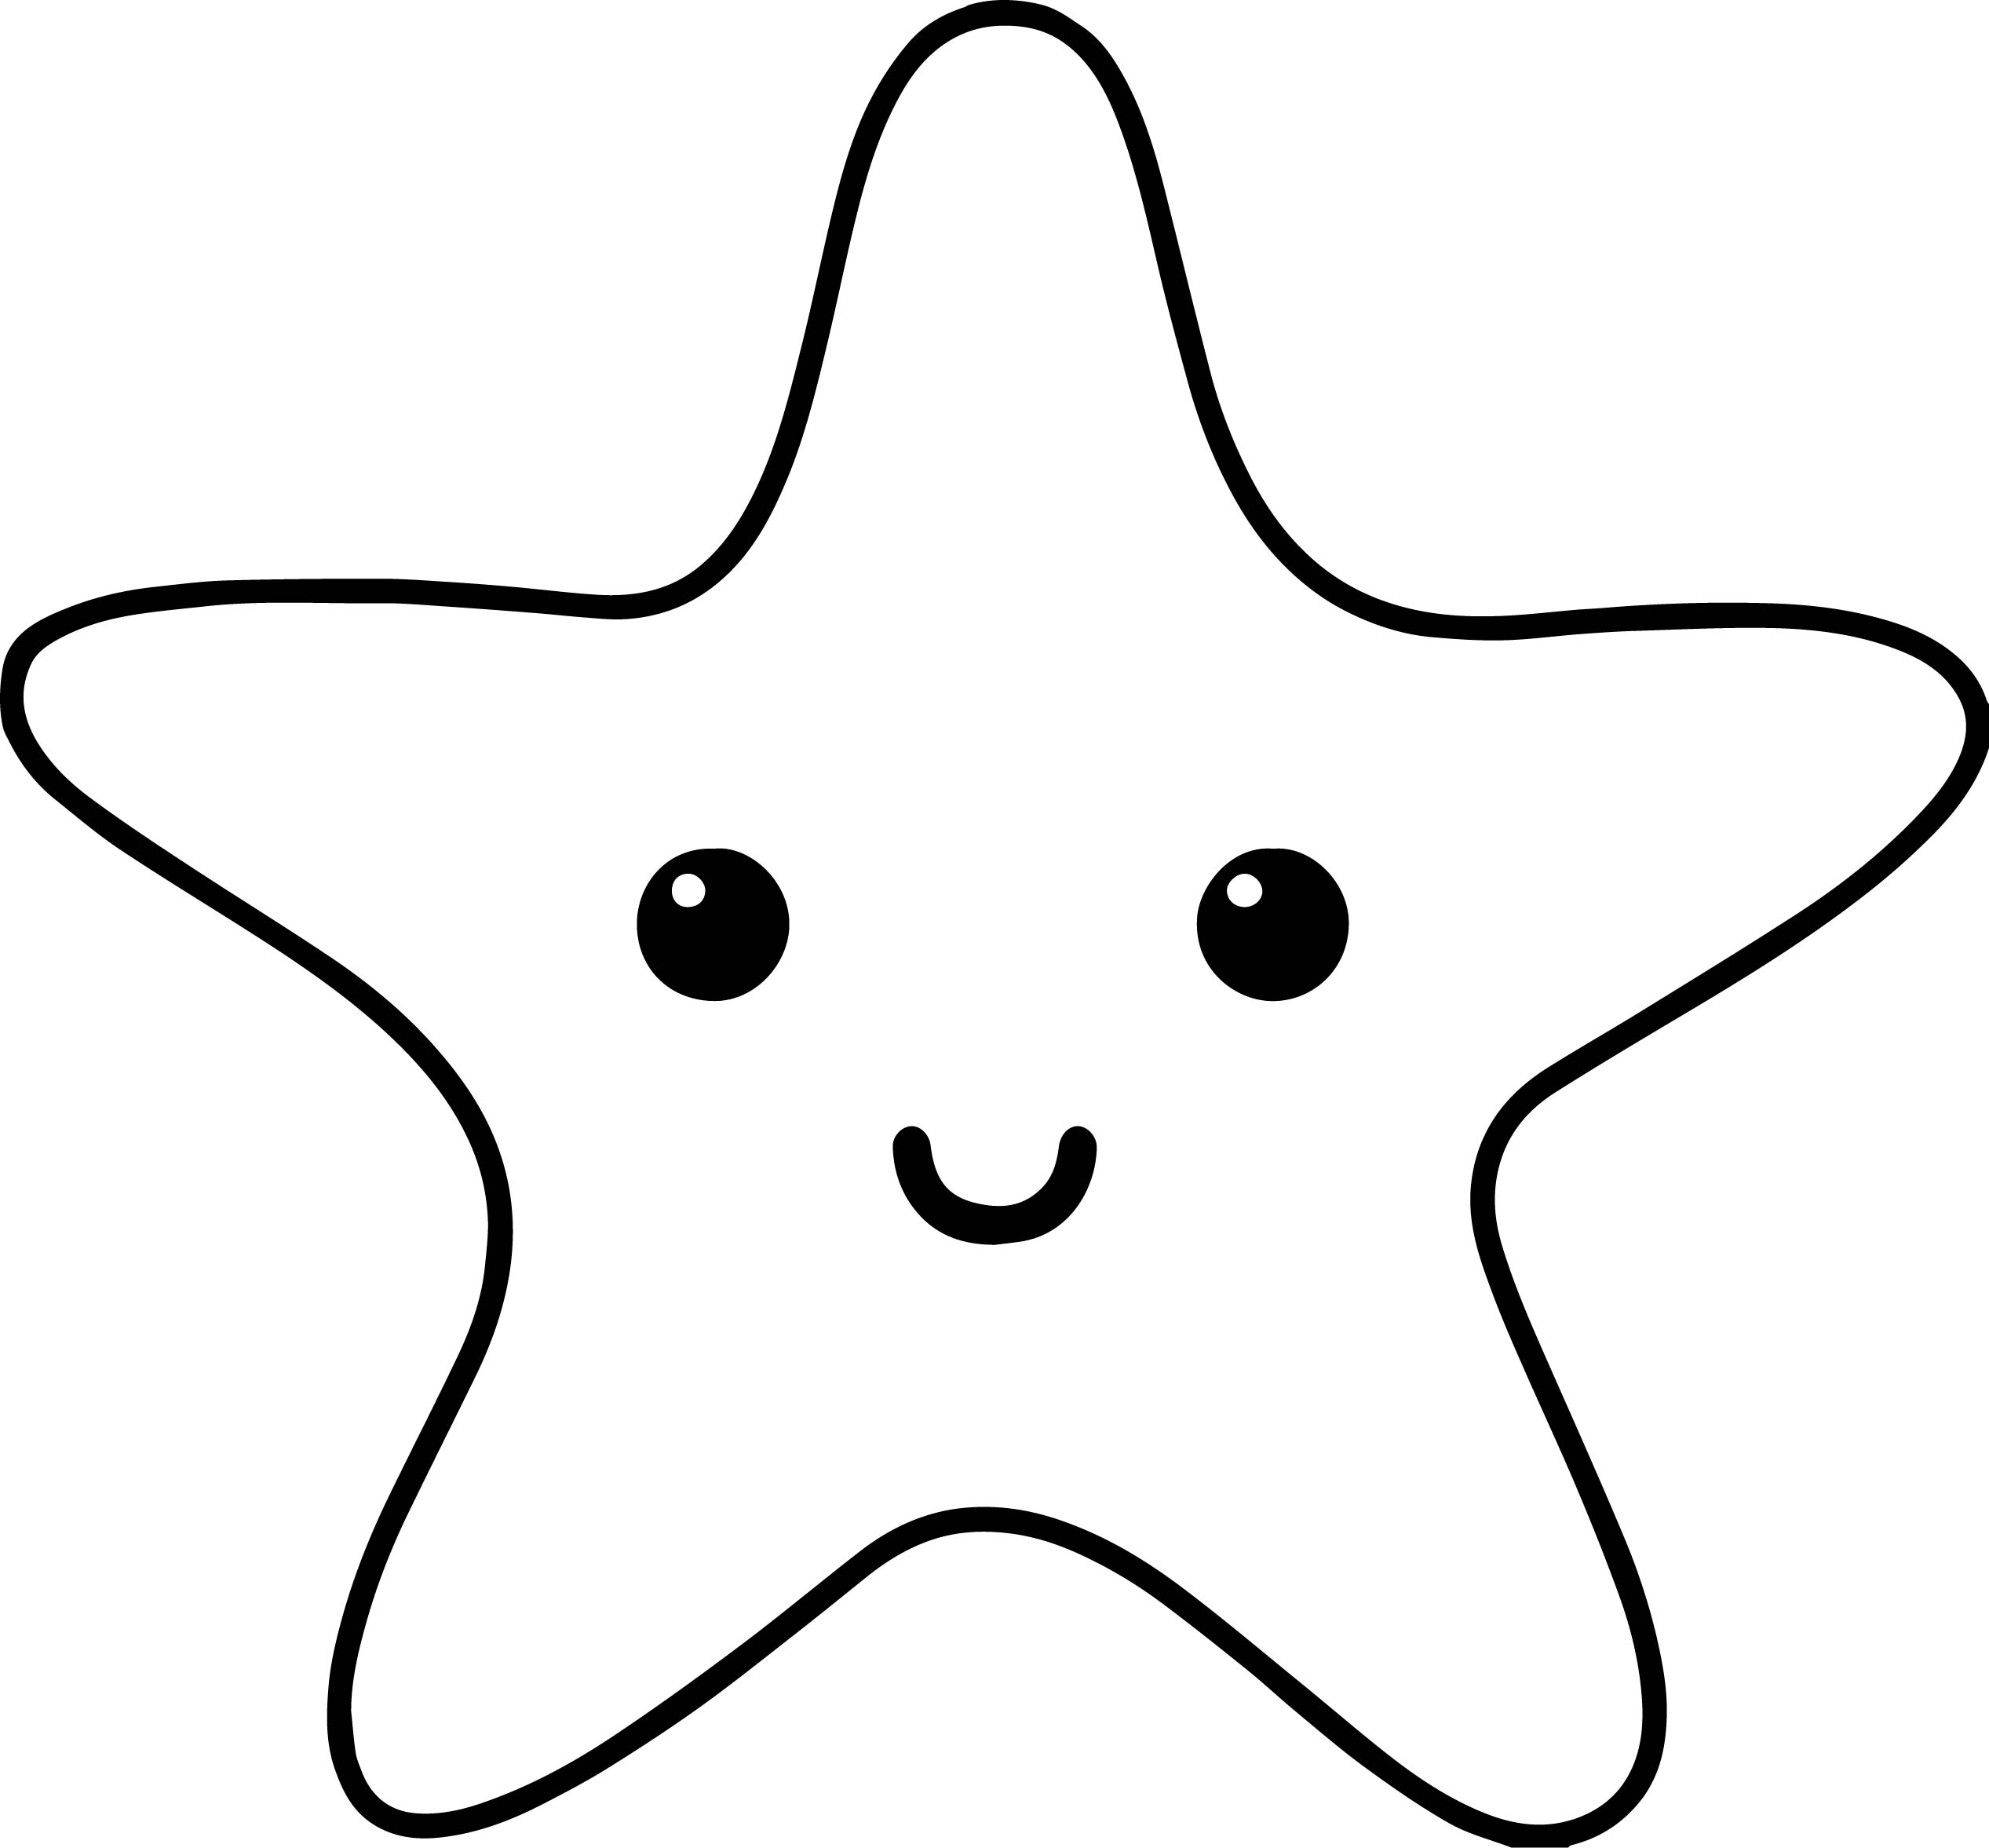 Starfish Coloring Pages Starfish Sea Creatures Coloring Page  Wecoloringpage